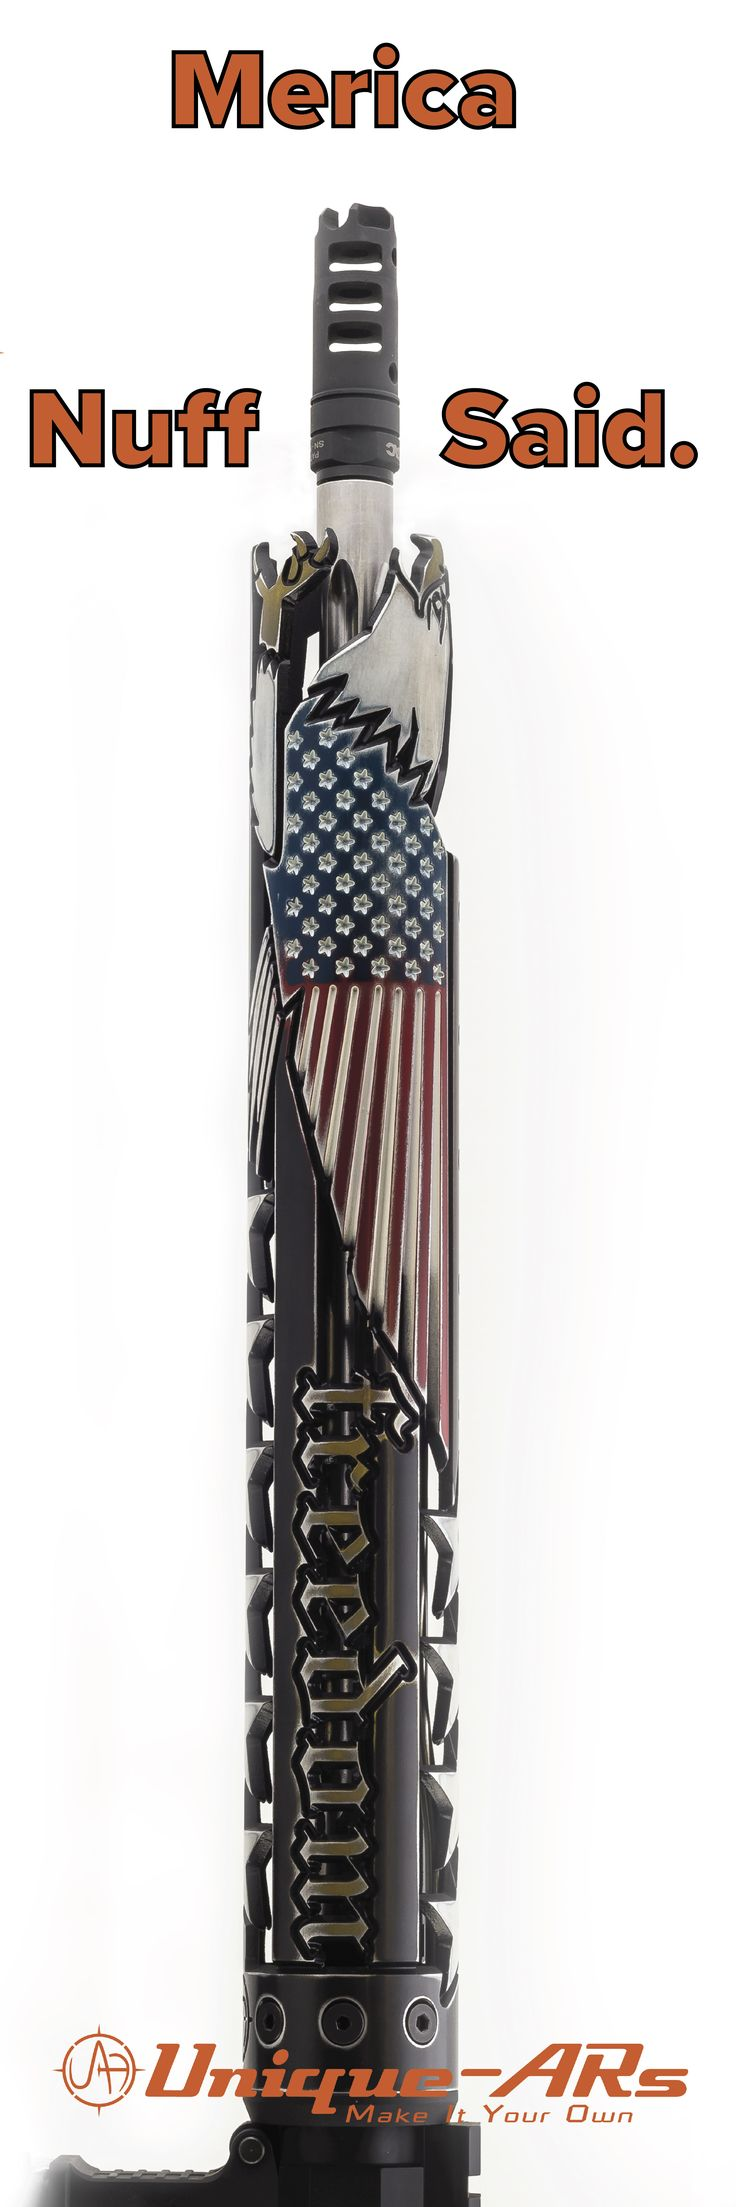 Unique-ARs AR-15 Freedom handguard with custom cerakote paint.  Merica...F-yeah.  Handguard is compatible with any mil-spec upper, including AR-15, AR-10 and airsoft uppers.  You can purchase from the website here- https://unique-ars.com/shop/hand-guards/freedom/